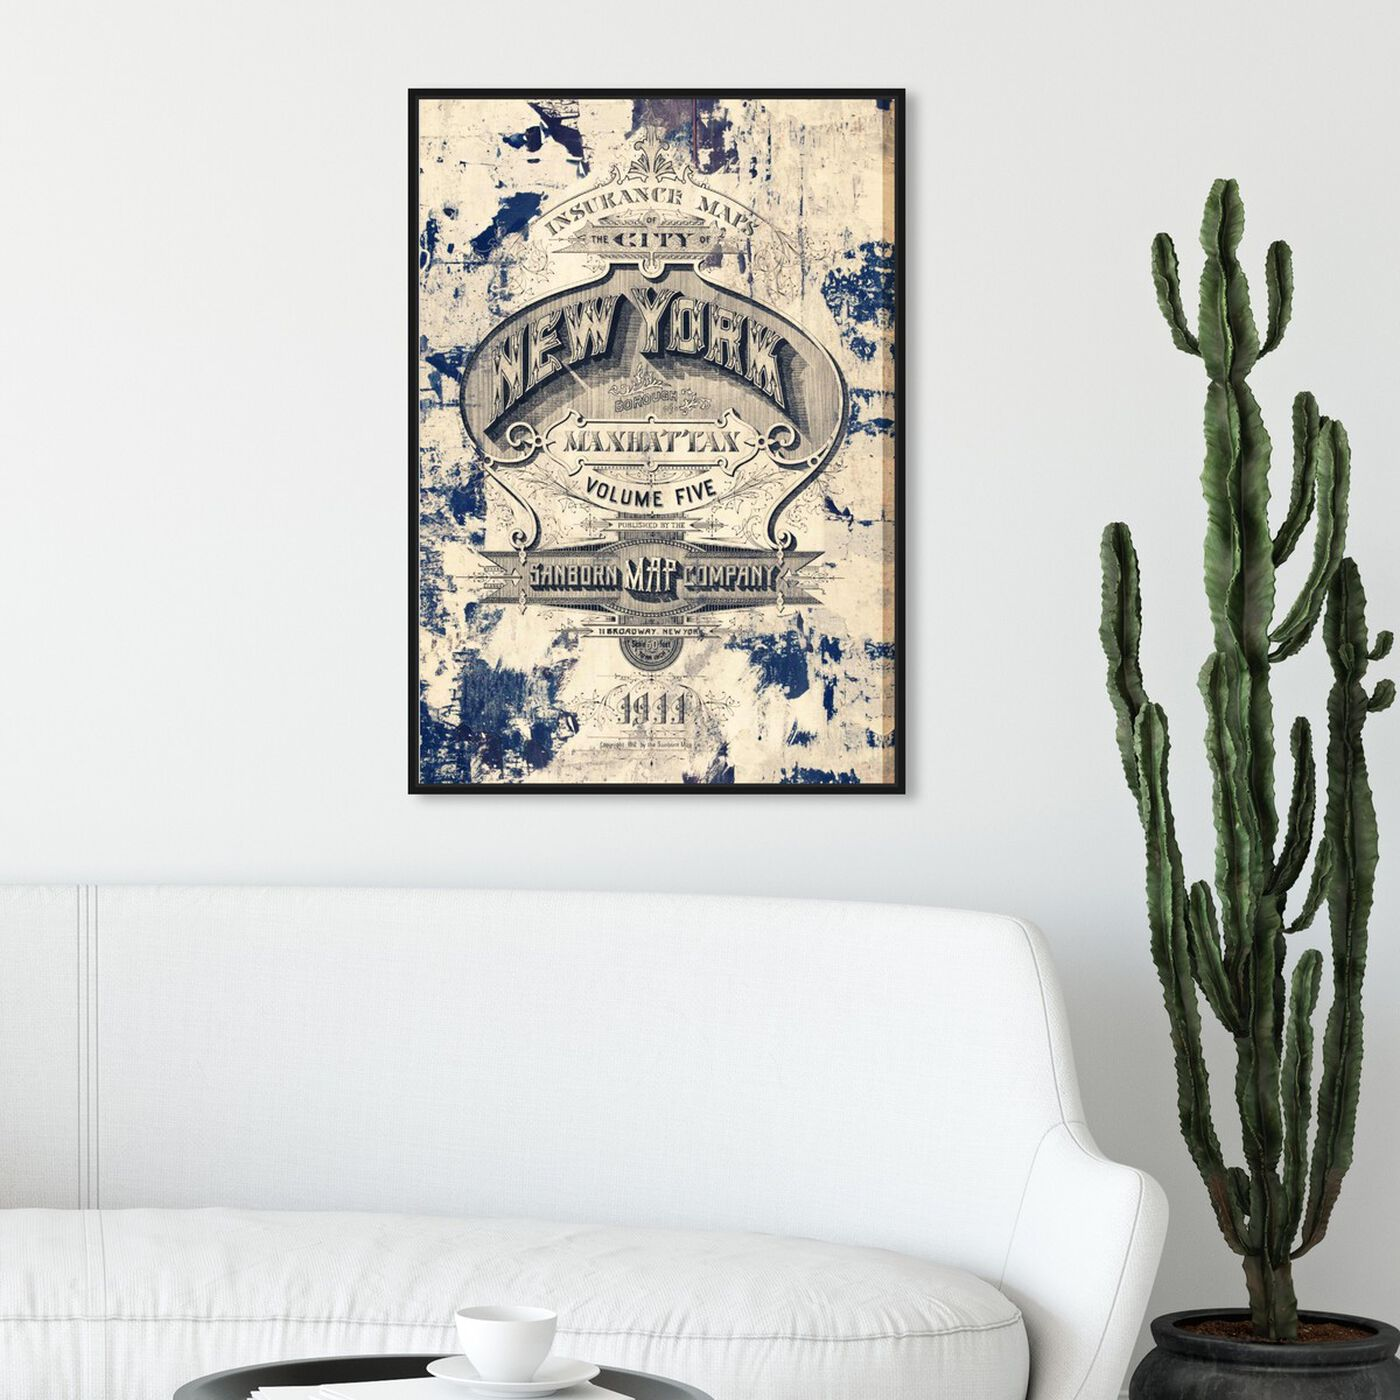 Hanging view of New York Insurance featuring advertising and posters art.